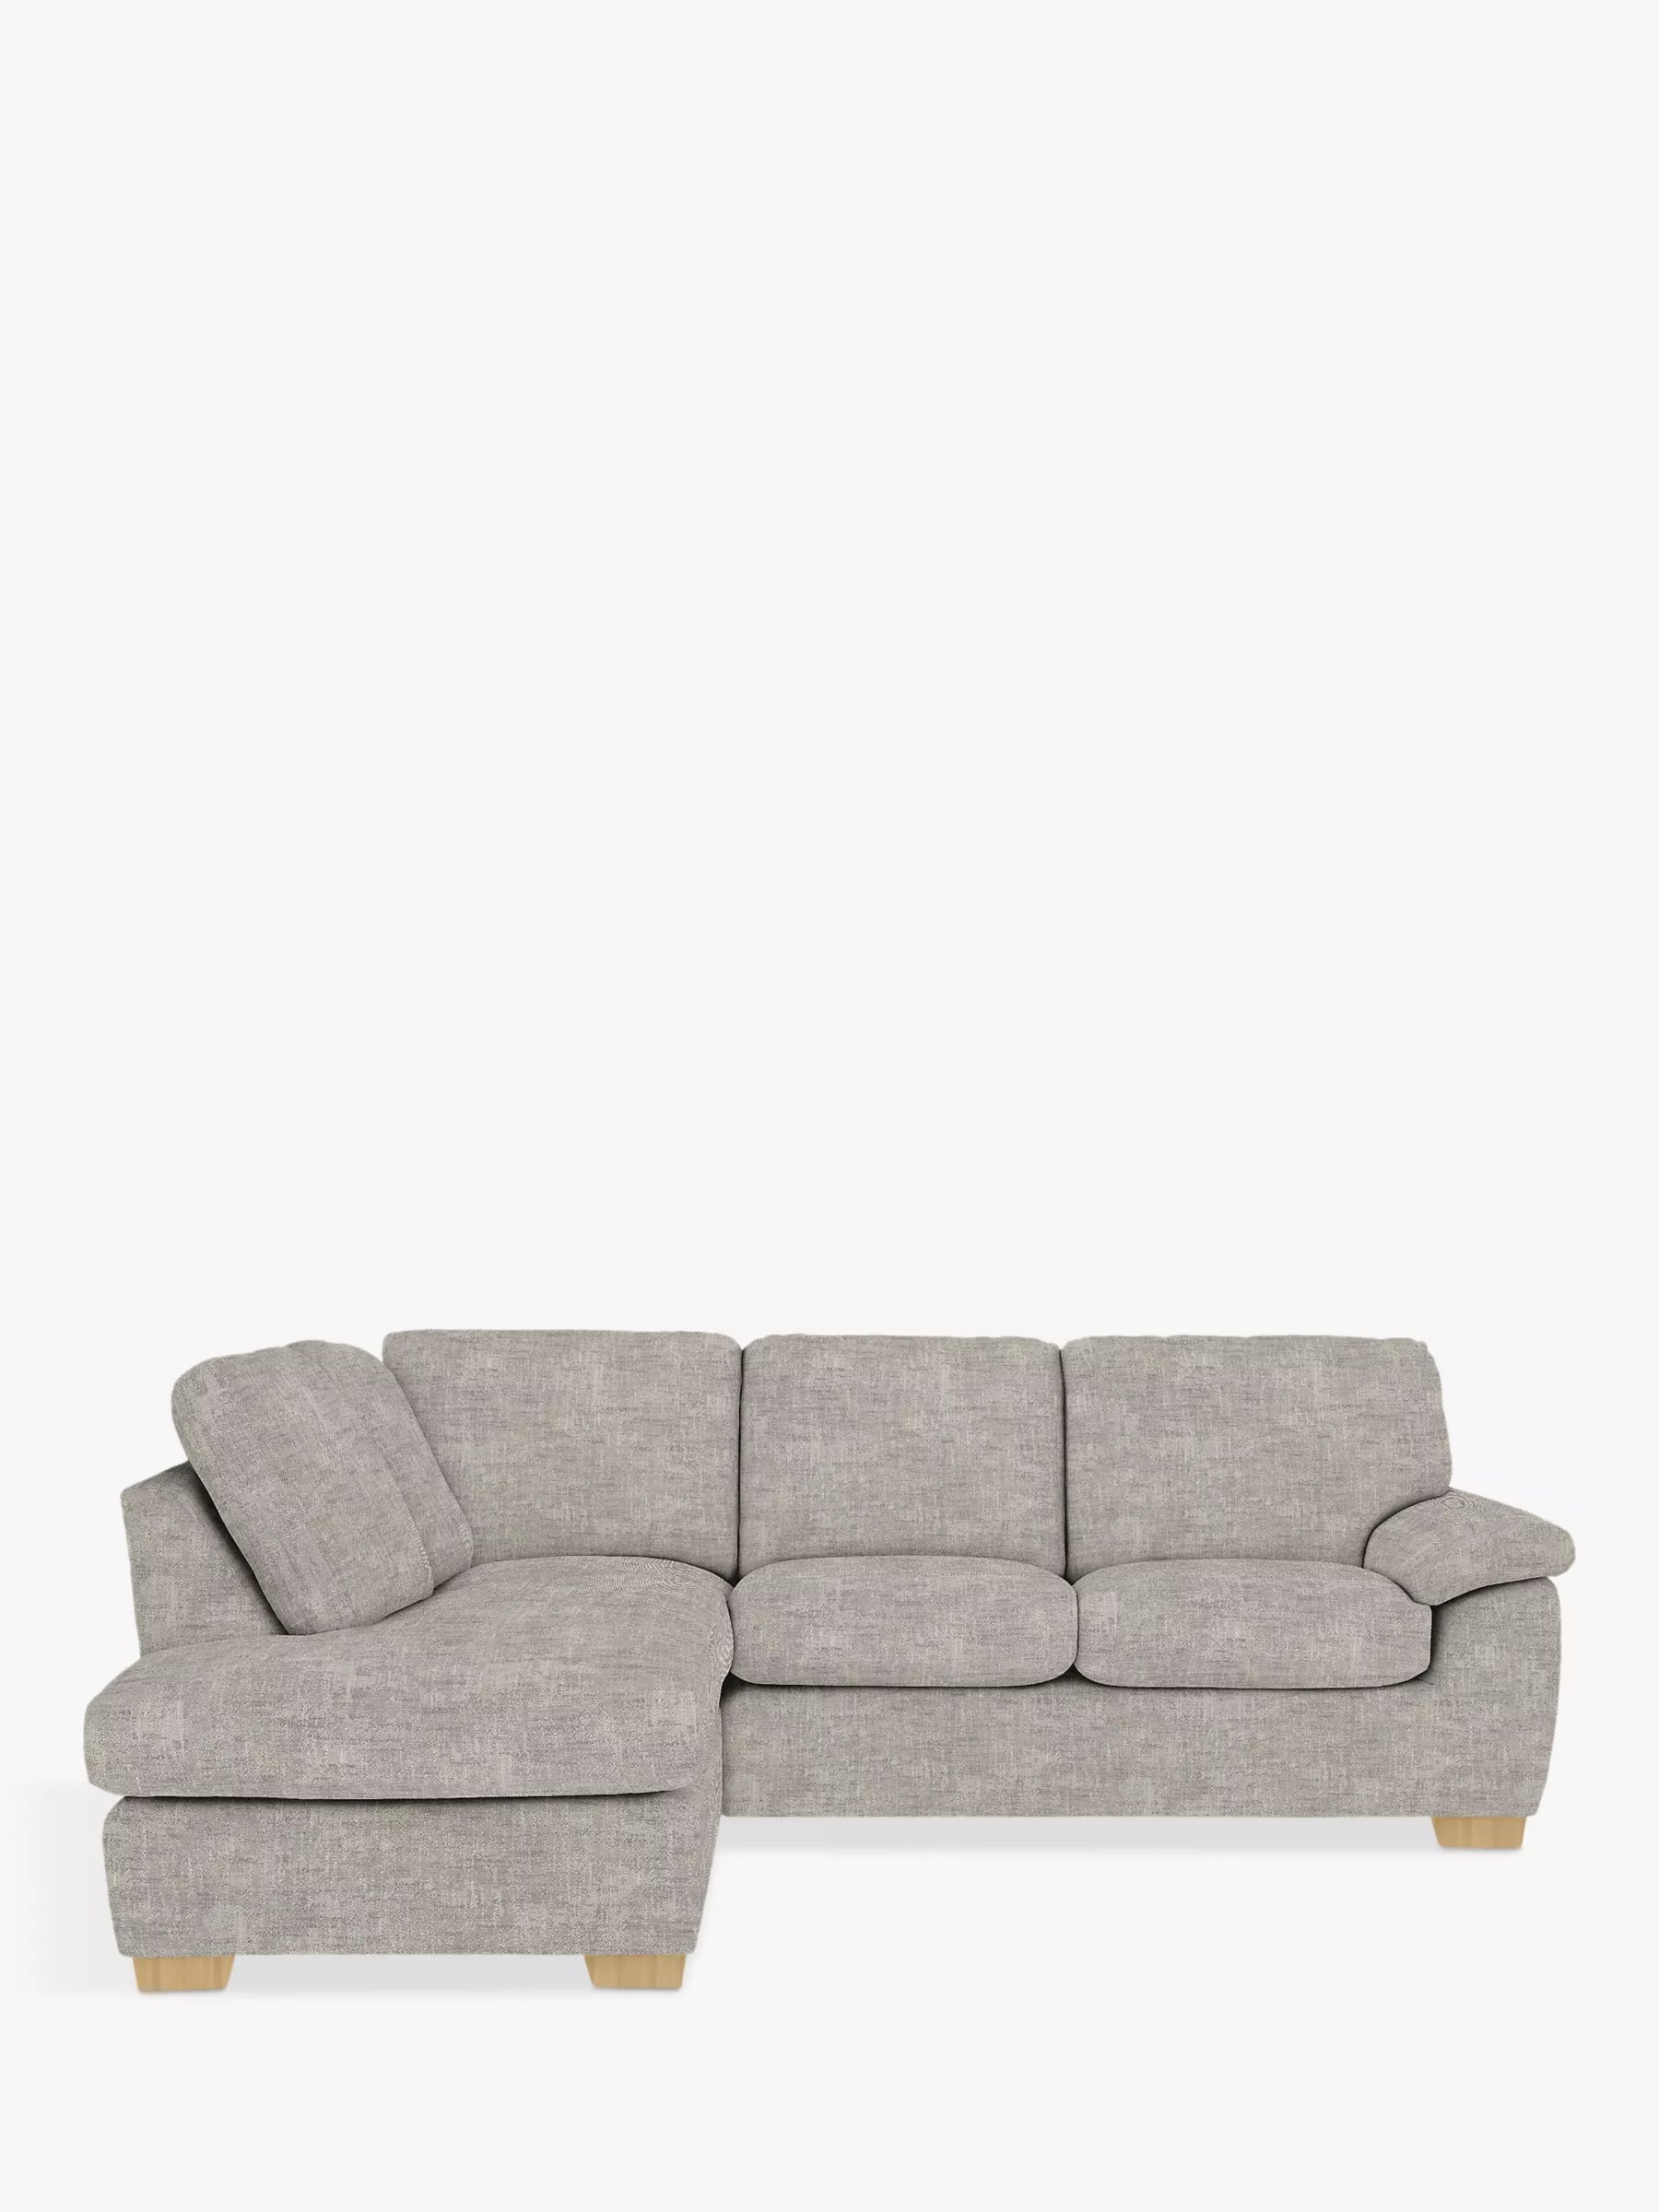 sofa bed and chaise synthetic leather cleaning camden sofas beds john lewis partners lhf corner end unit light leg